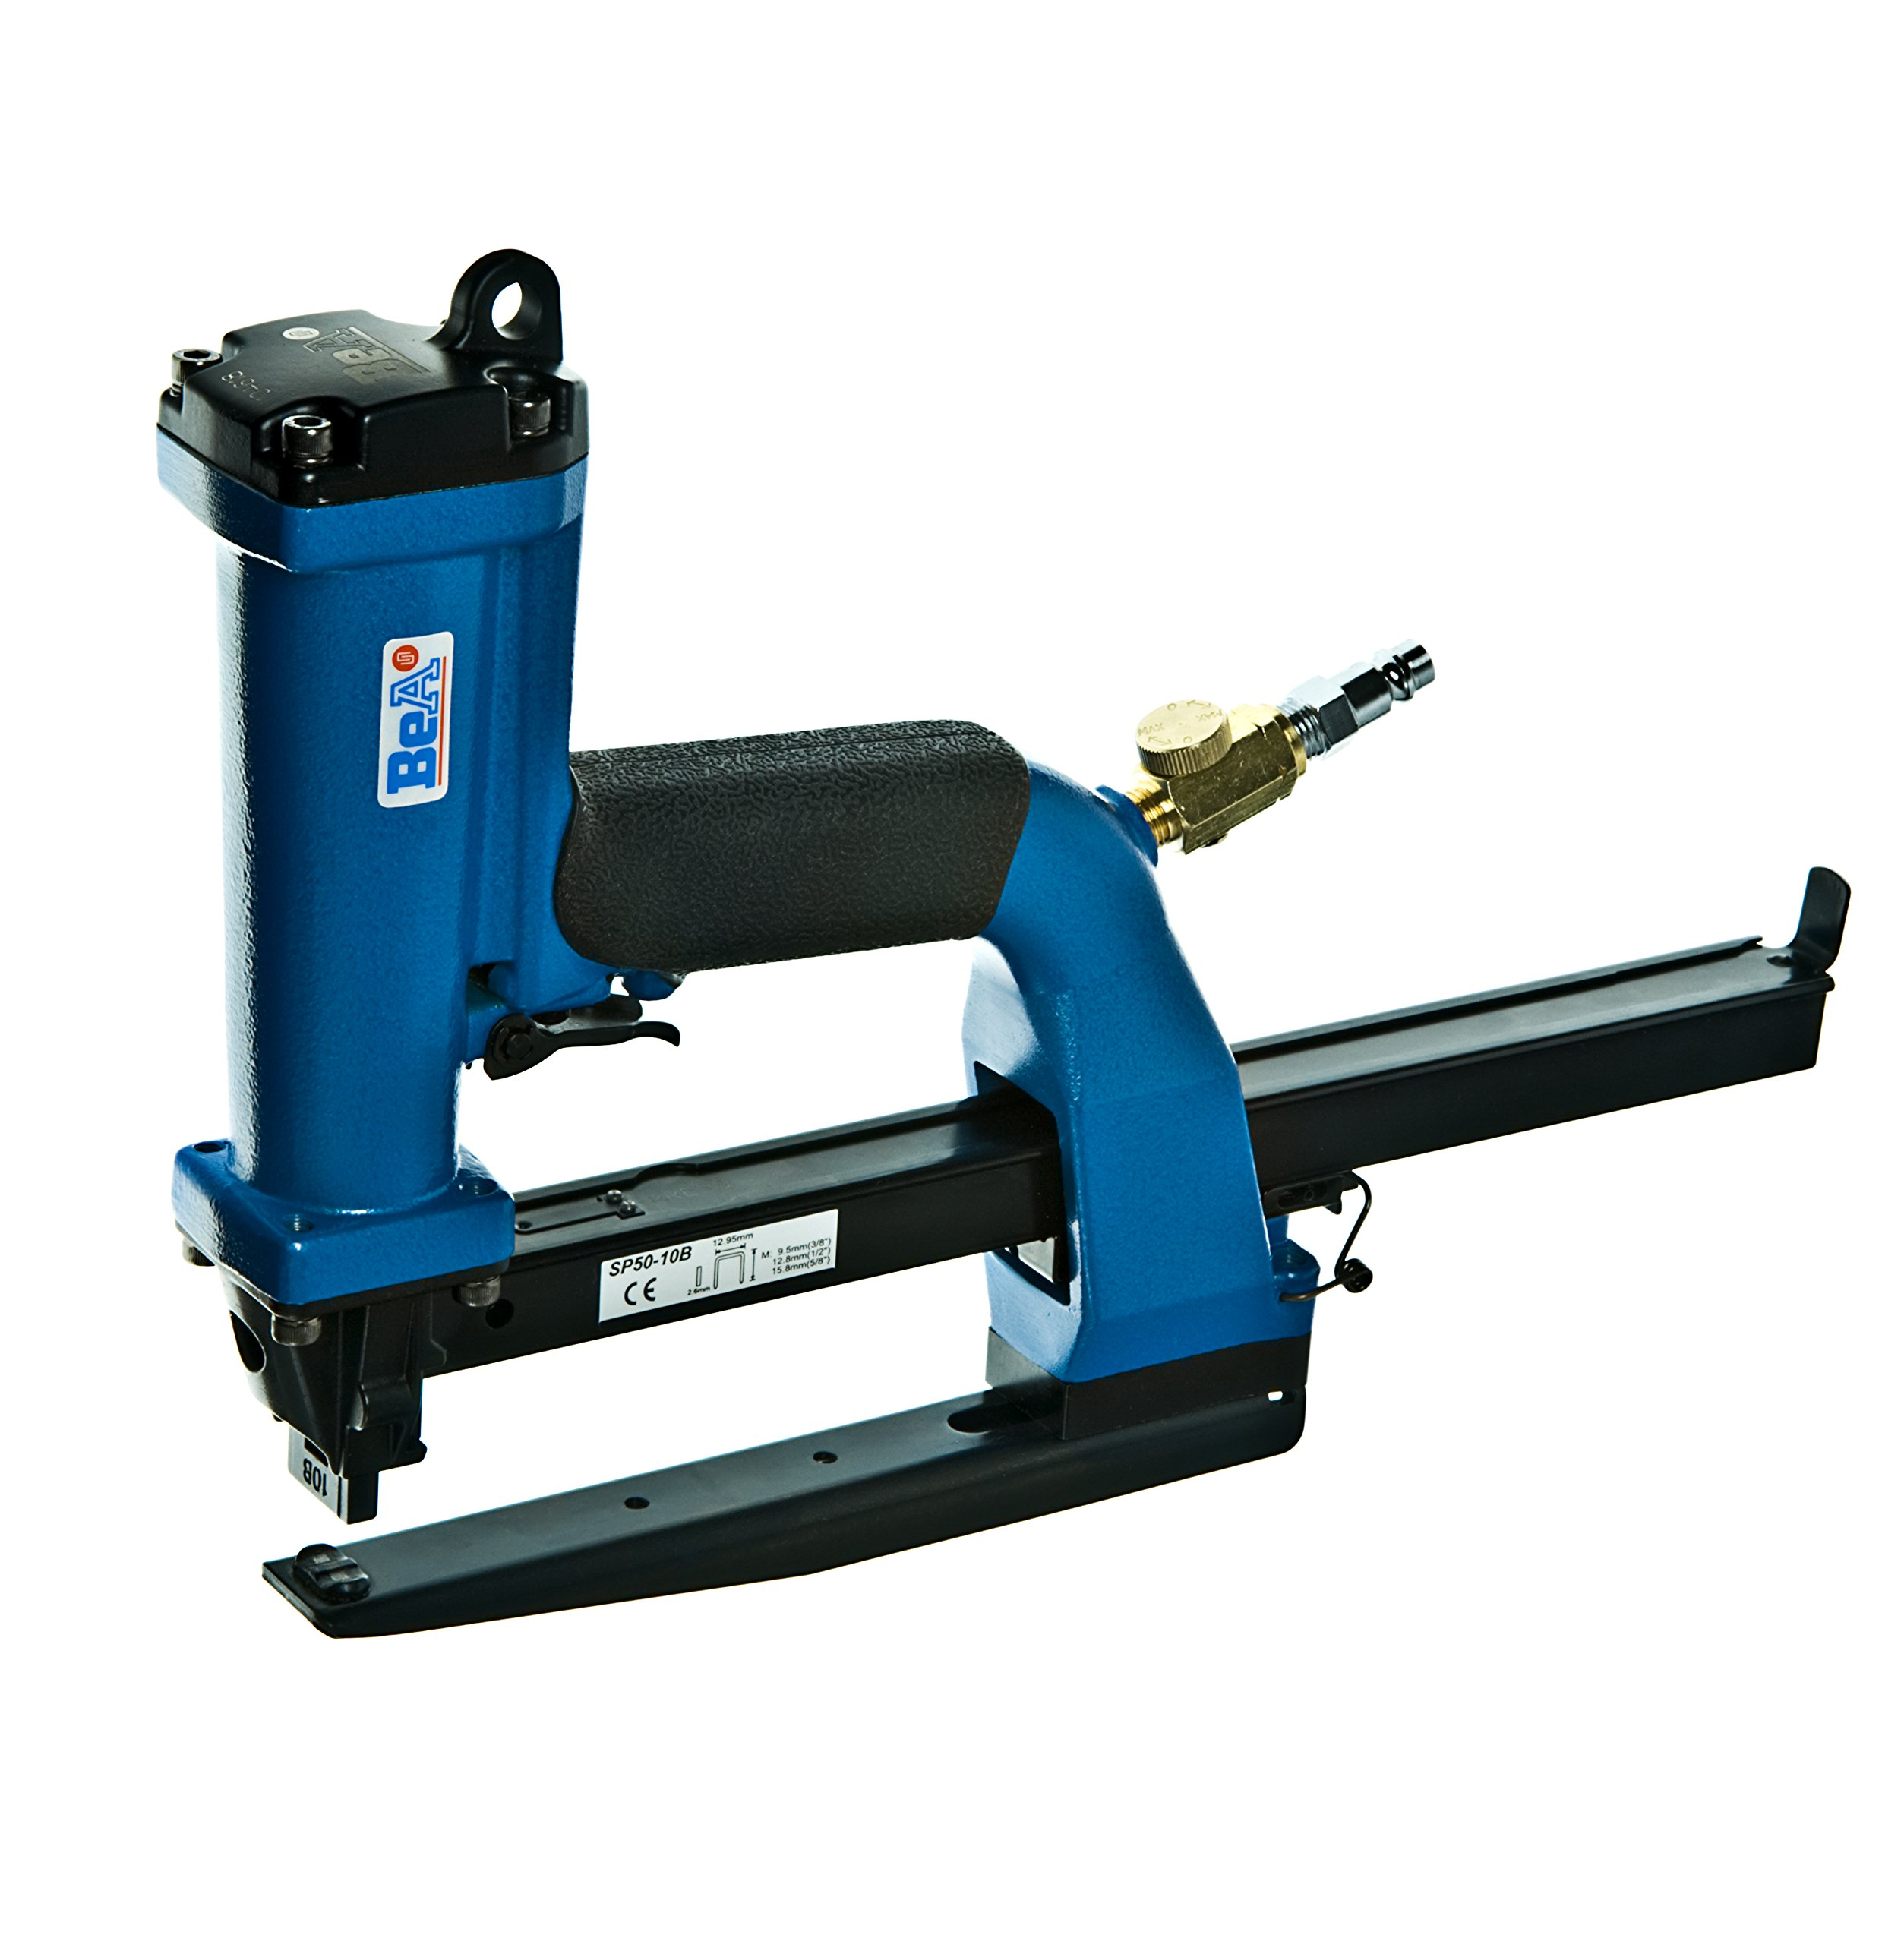 BeA AT-P50-10B Plier Stapler for Sb103020 Type Staples with 3/8-Inch, 1/2-Inch or 5/8-Inch Leg Length